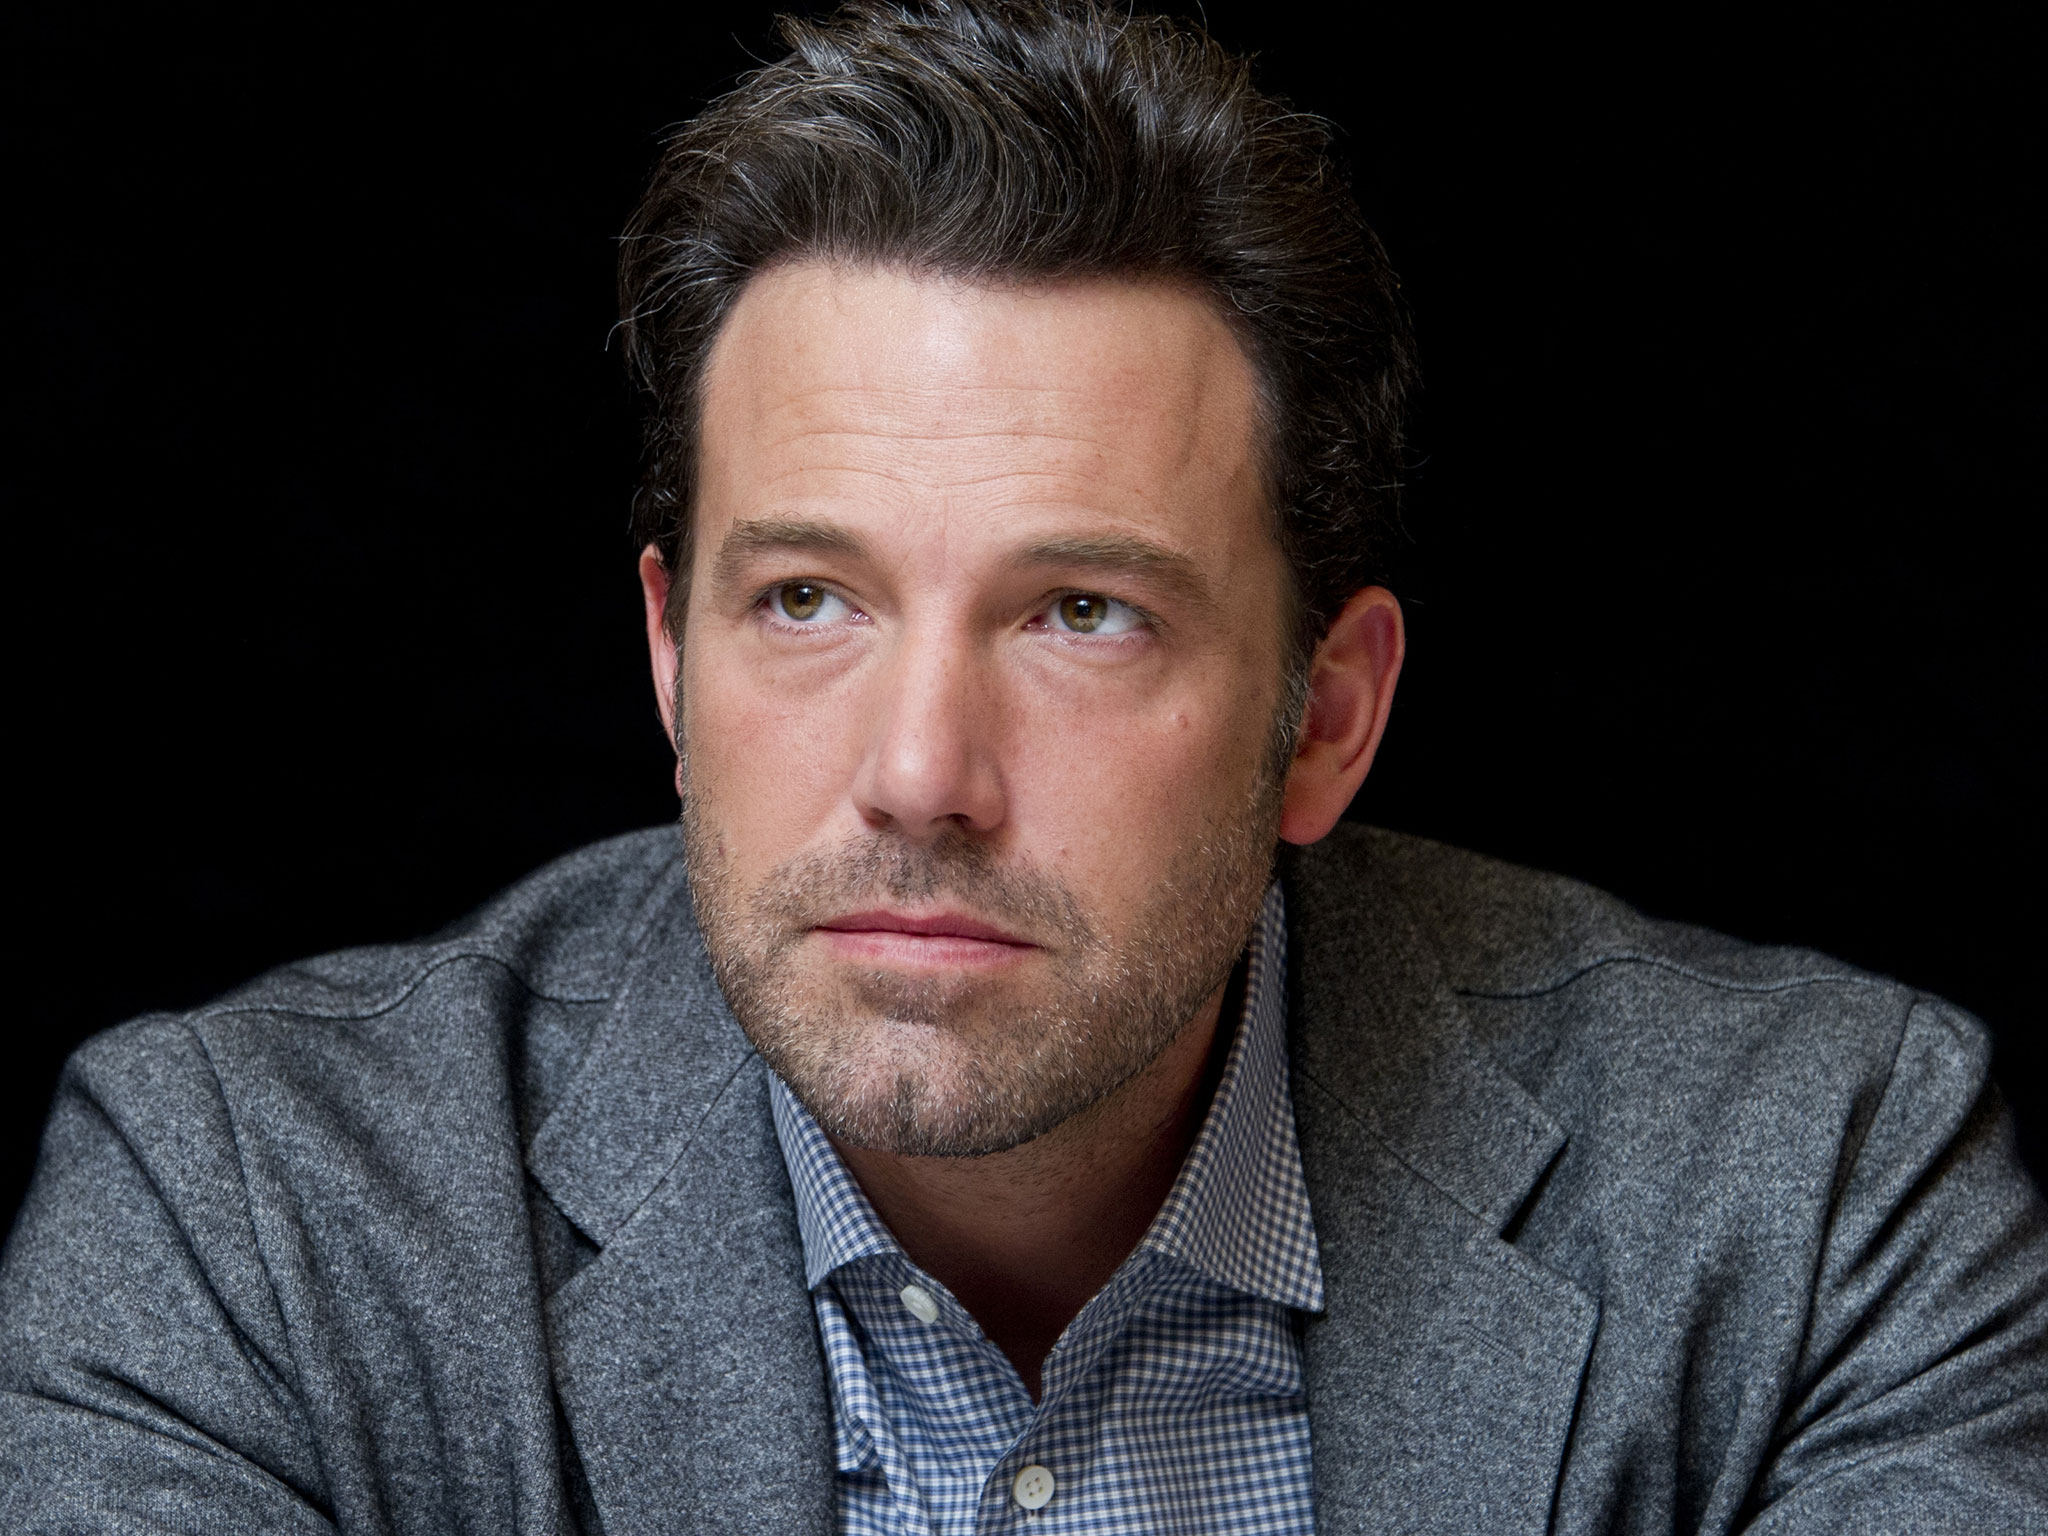 Ben Affleck asked TV chiefs to hide slave-owning ancestry, new hacked Sony emails published by Wikileaks claim - People - News - The Independent